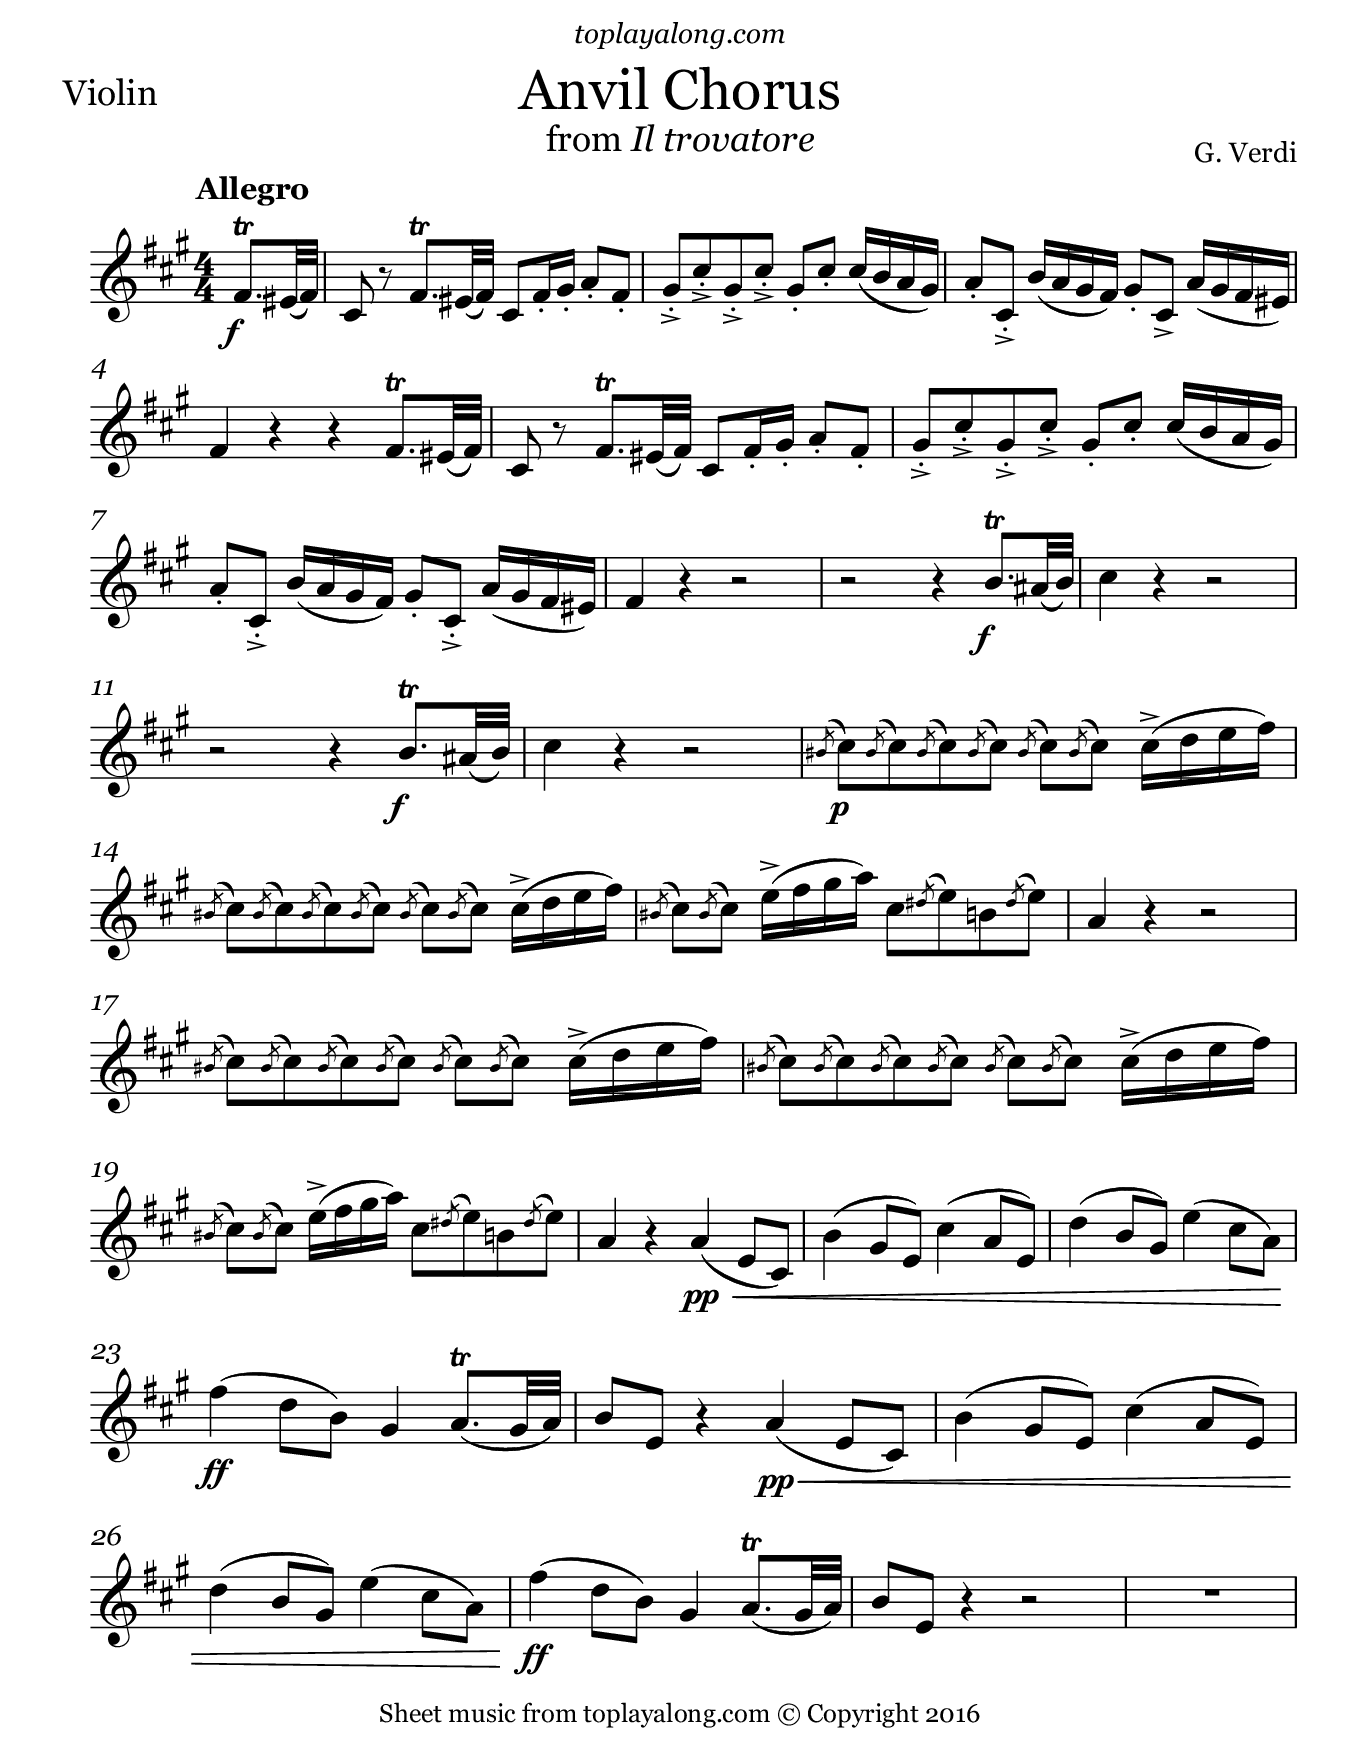 Anvil Chorus from Il trovatore by Verdi. Sheet music for Violin, page 1.